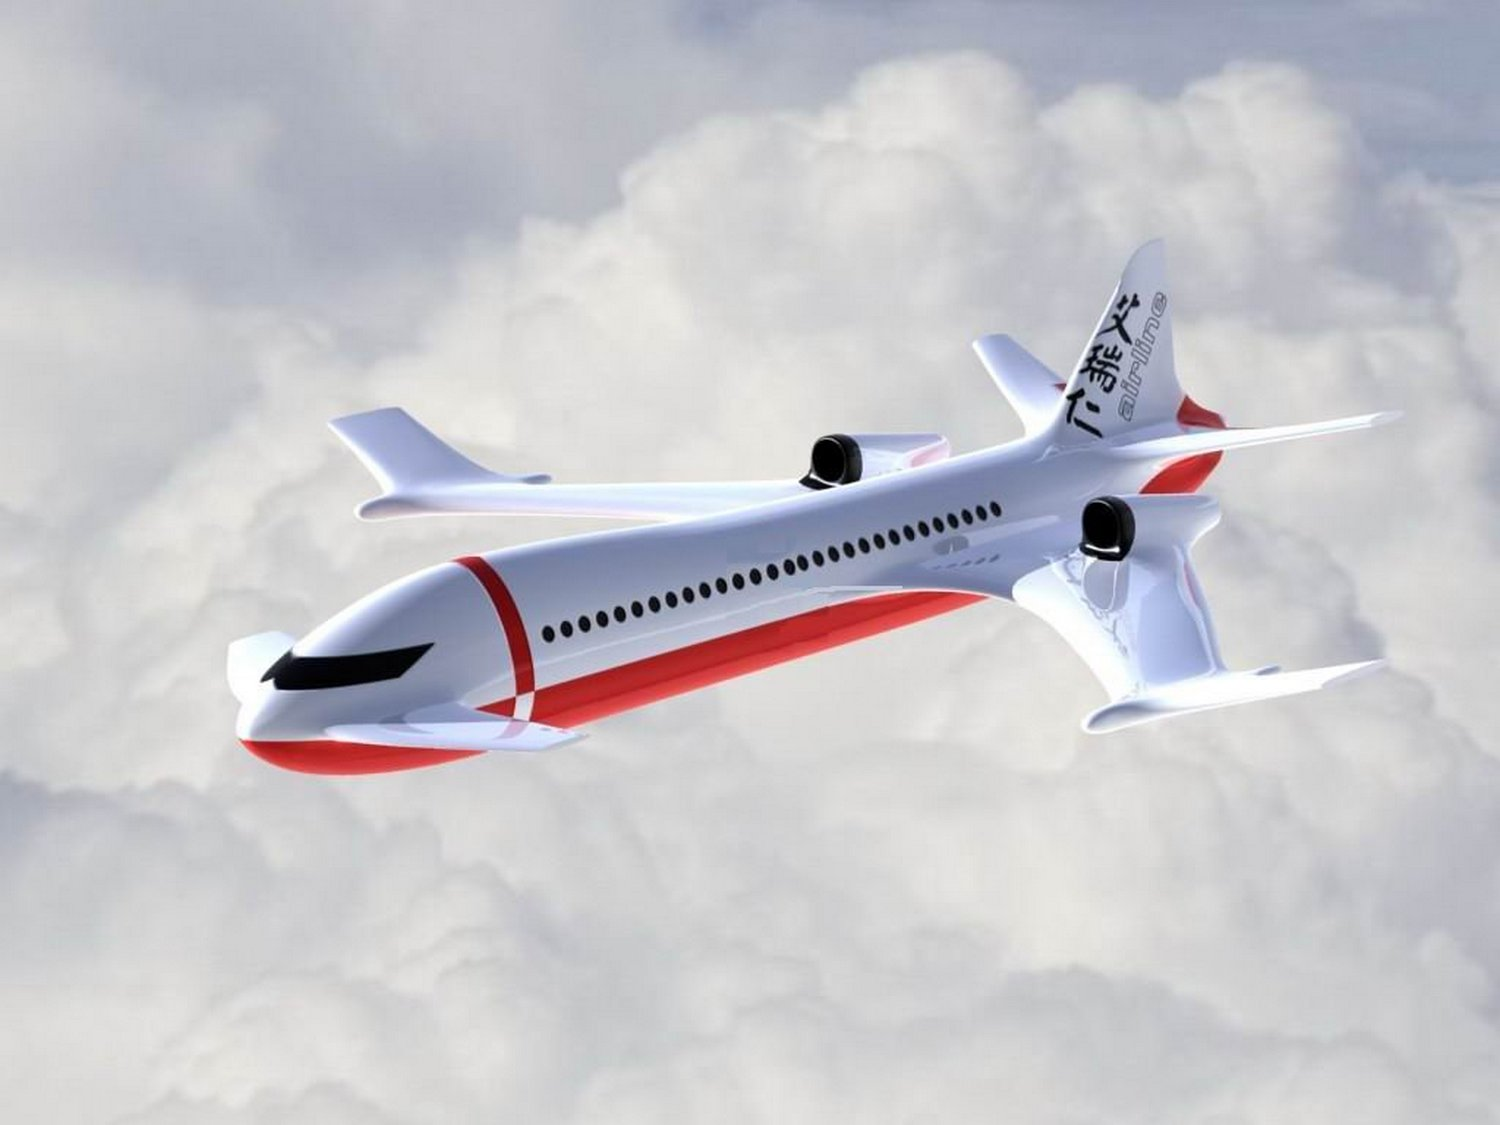 NASA Concept Plane - Pics about space